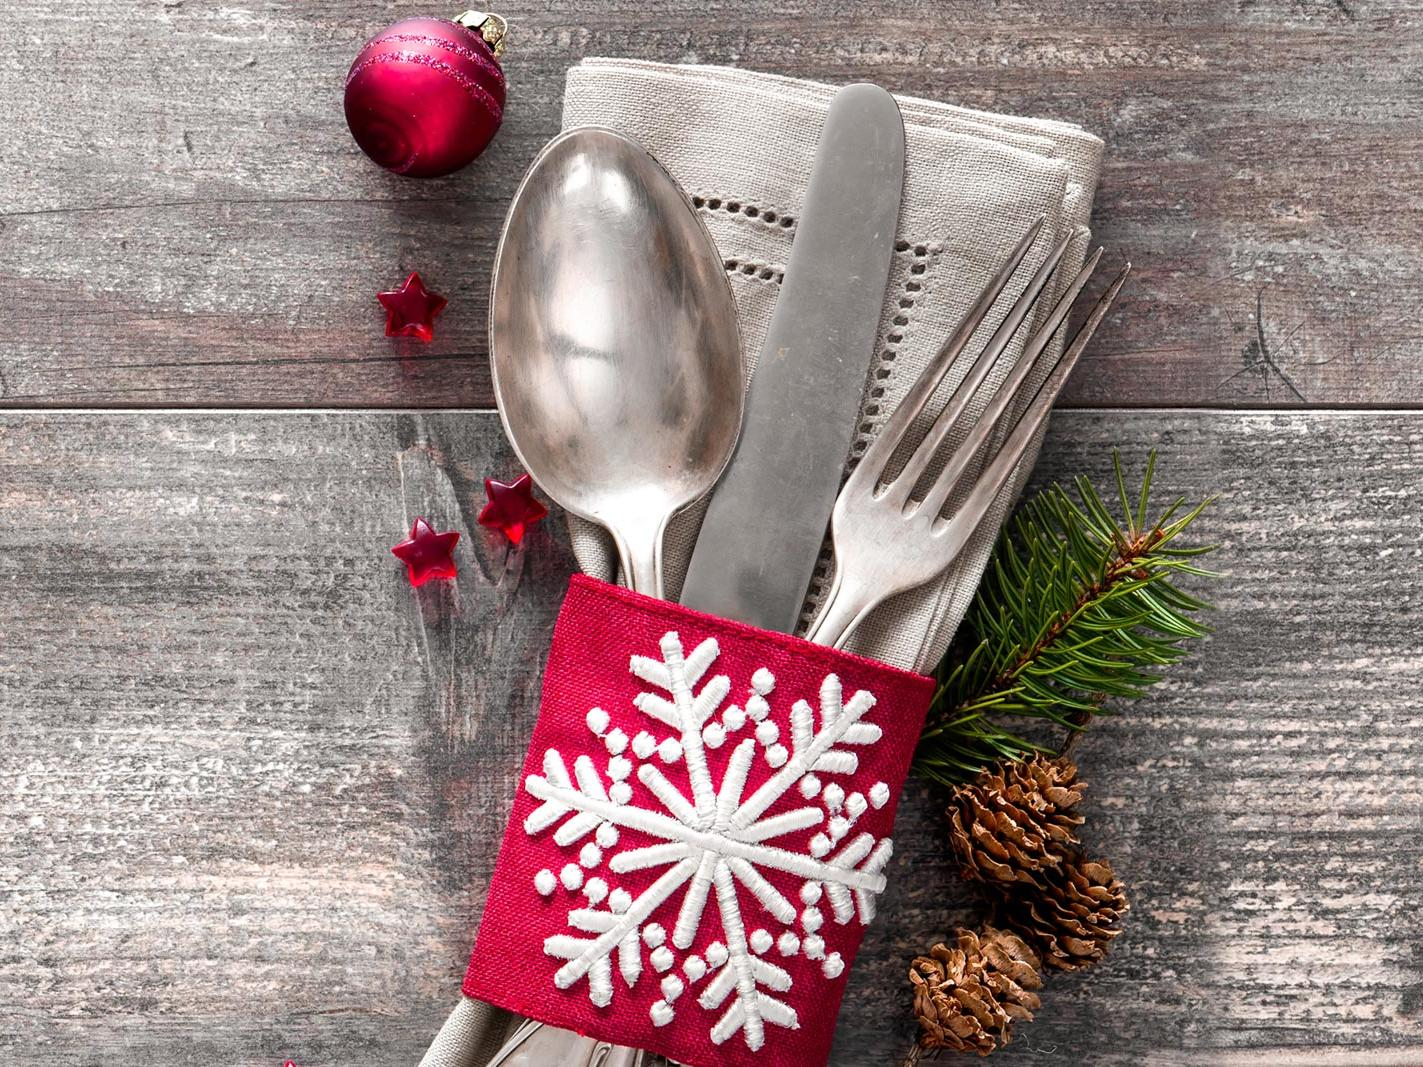 Spoon, Knife and Fork with holiday decorations